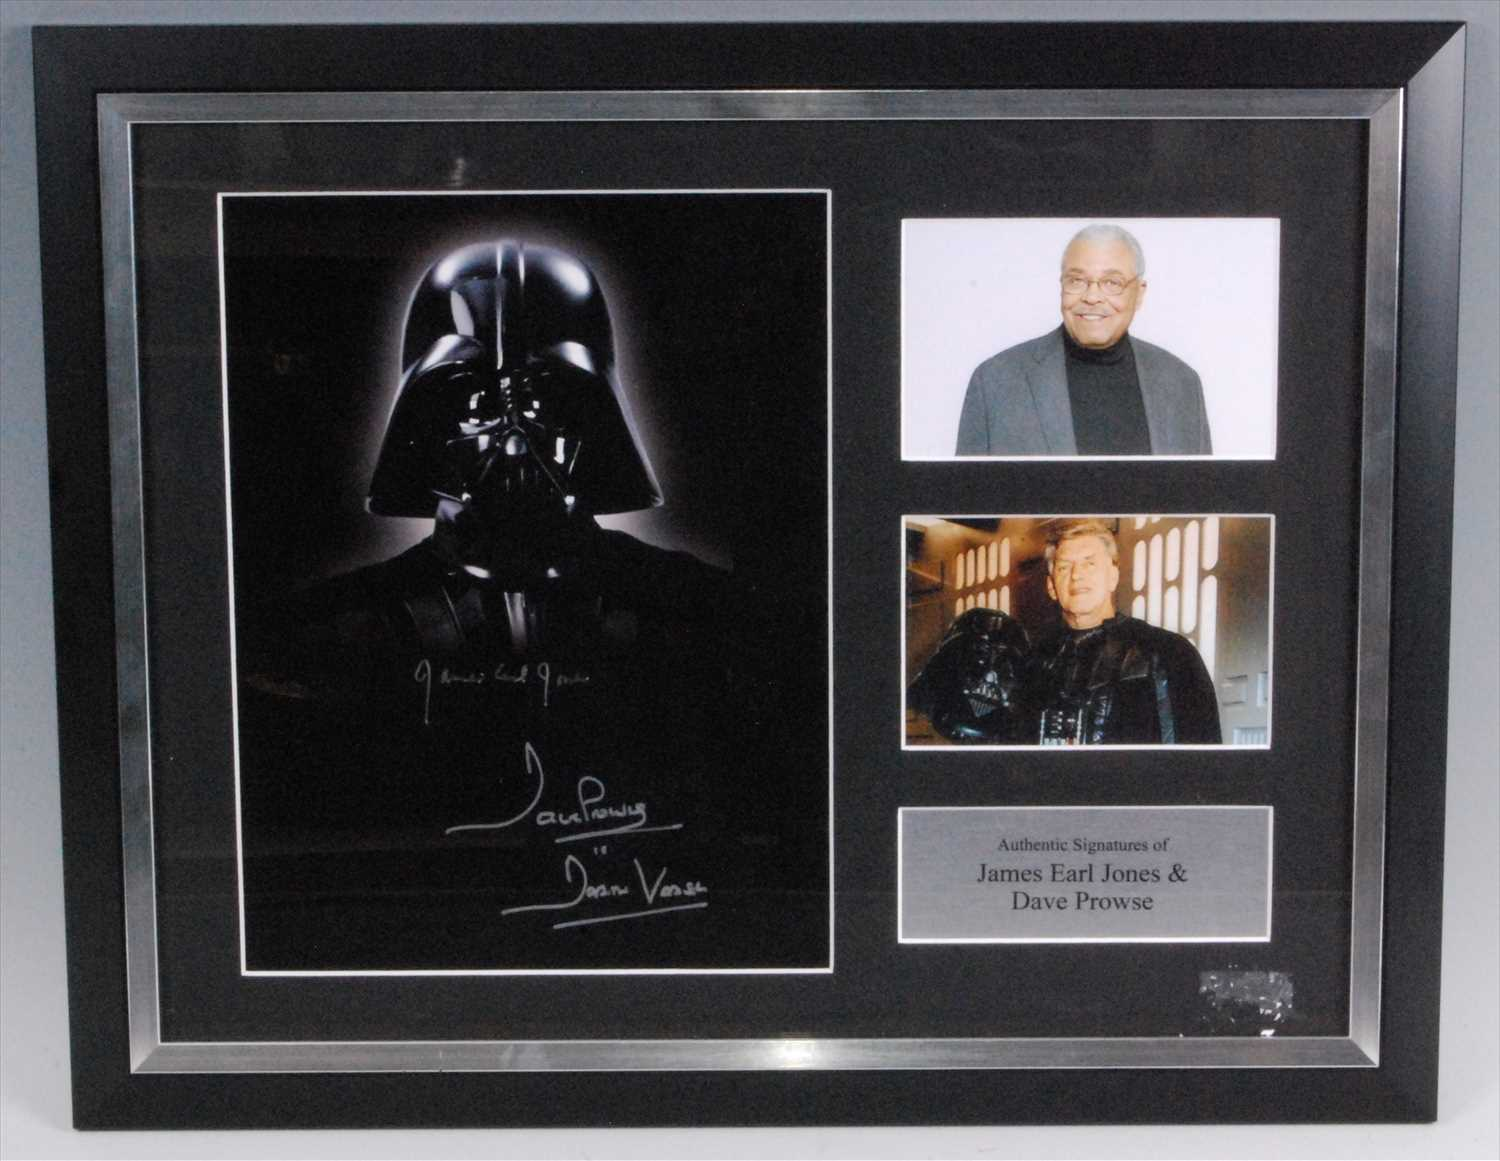 Lot 521-Star Wars, a 31 x 23cm colour photograph of Darth Vader